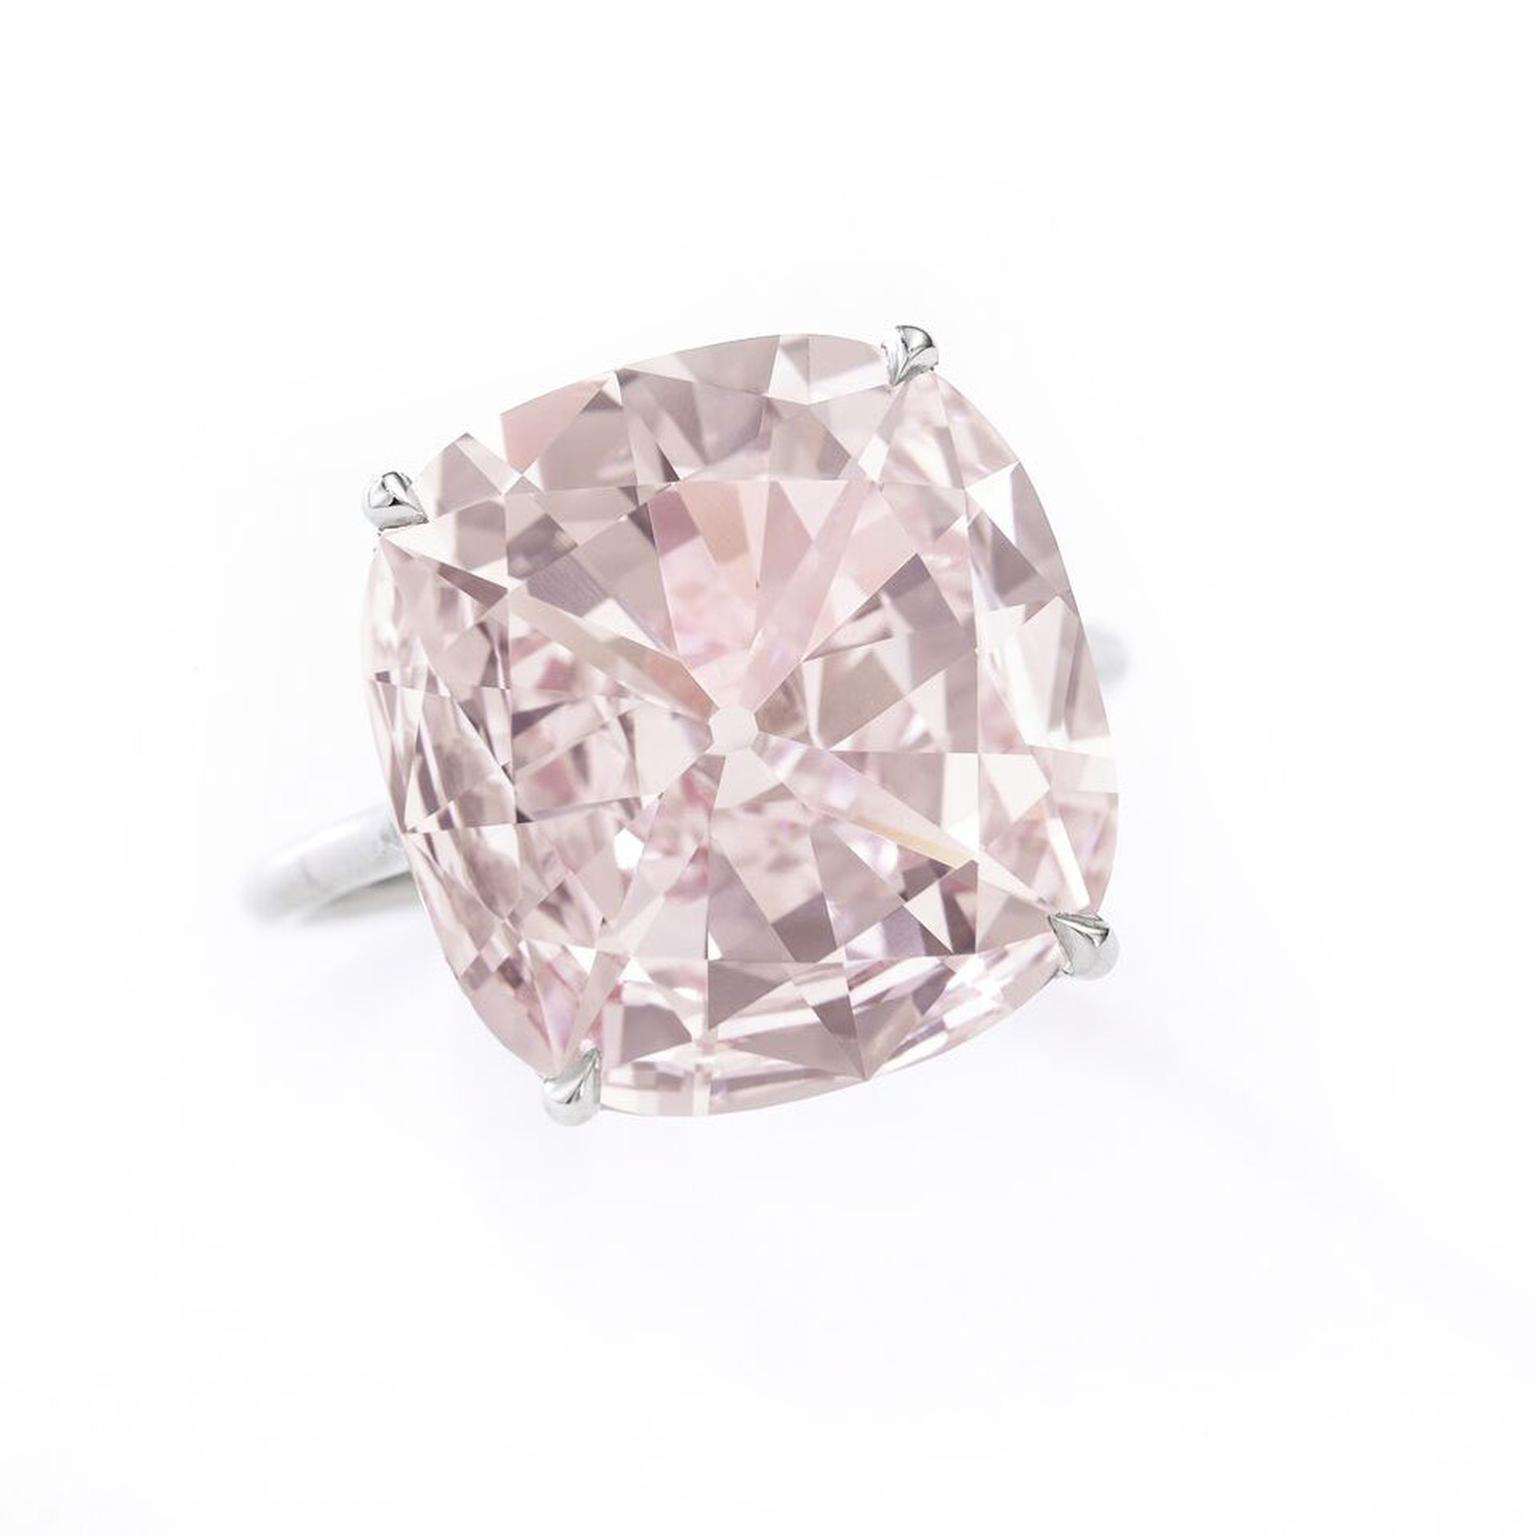 Fancy 8.20ct purplish pink diamond